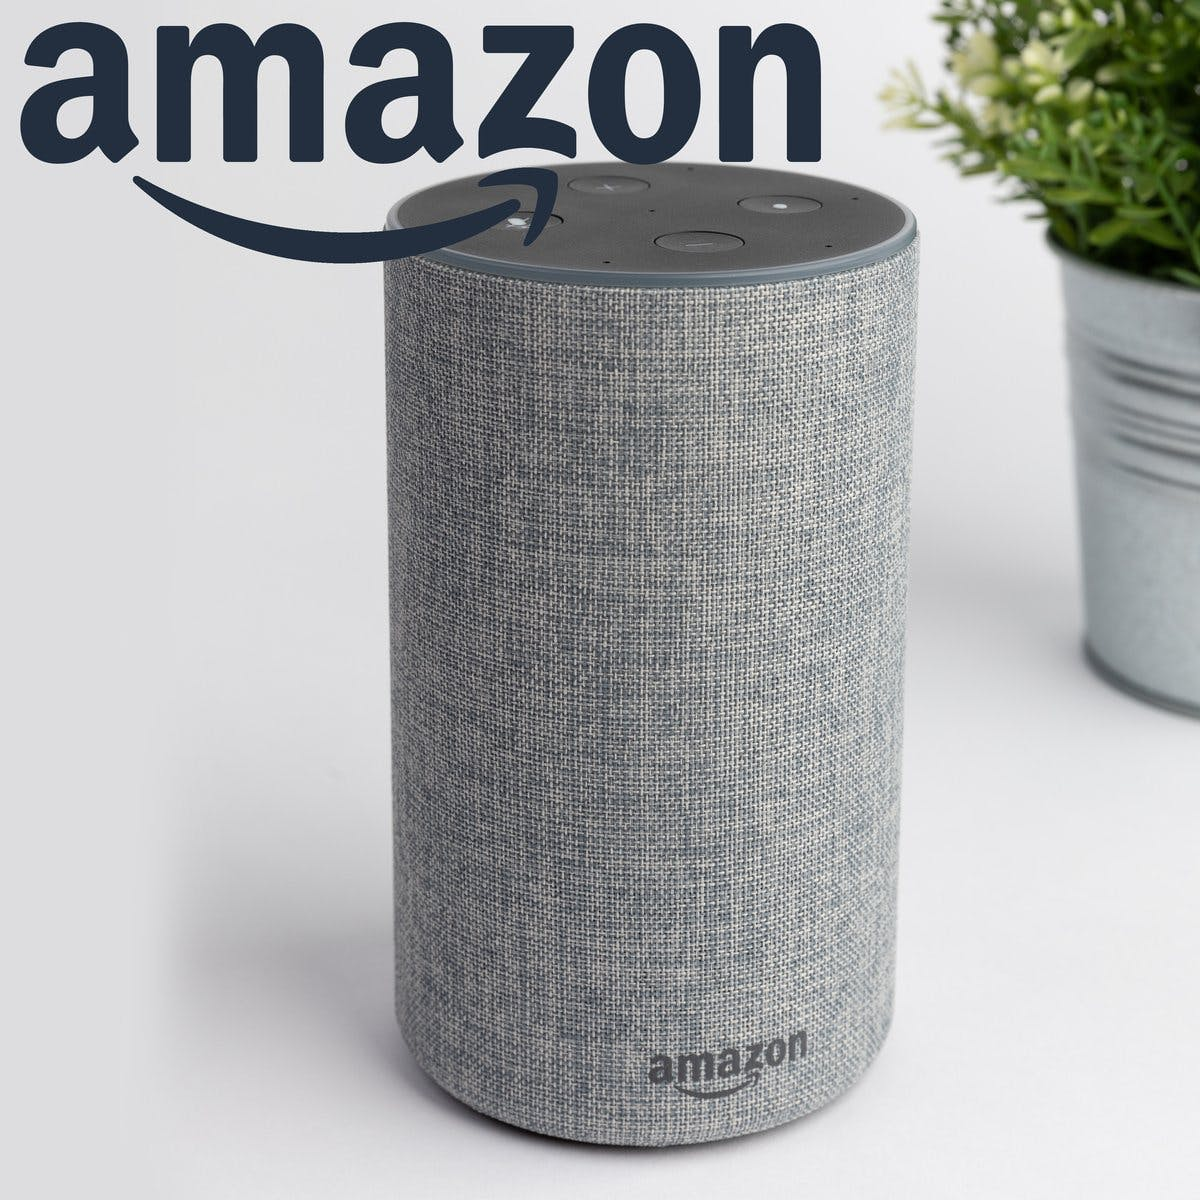 Amazon Home Image